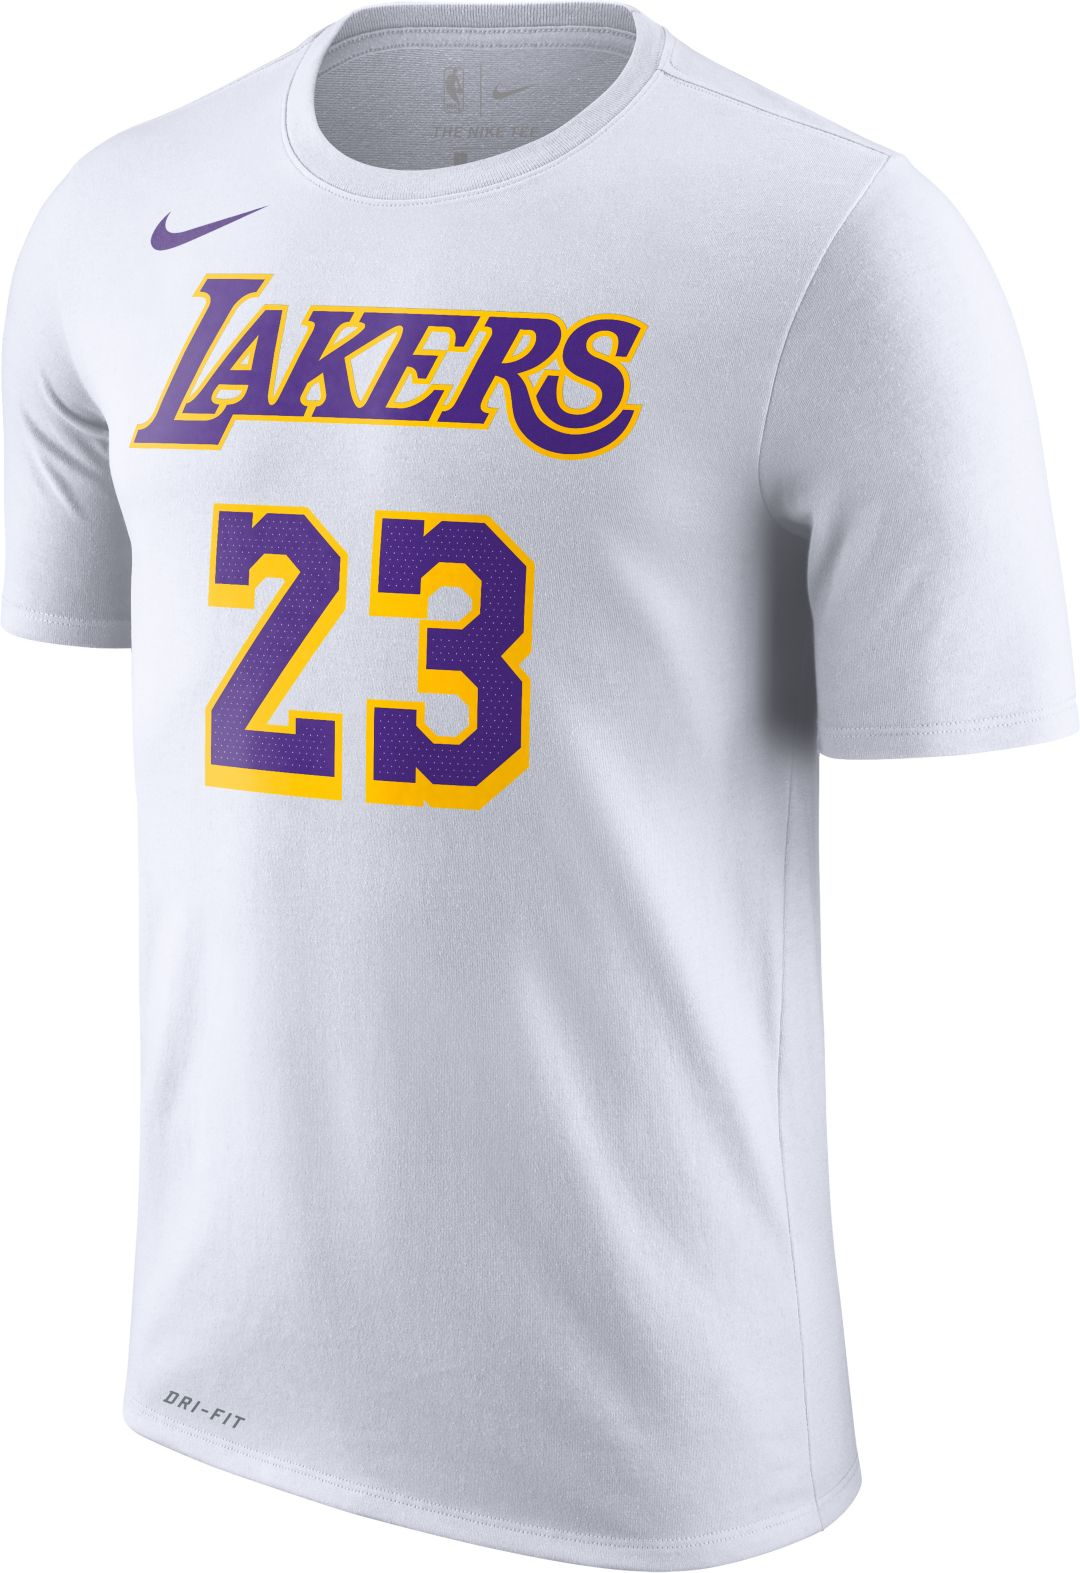 9debc35f8 Nike Men's Los Angeles Lakers LeBron James Dri-FIT White T-Shirt